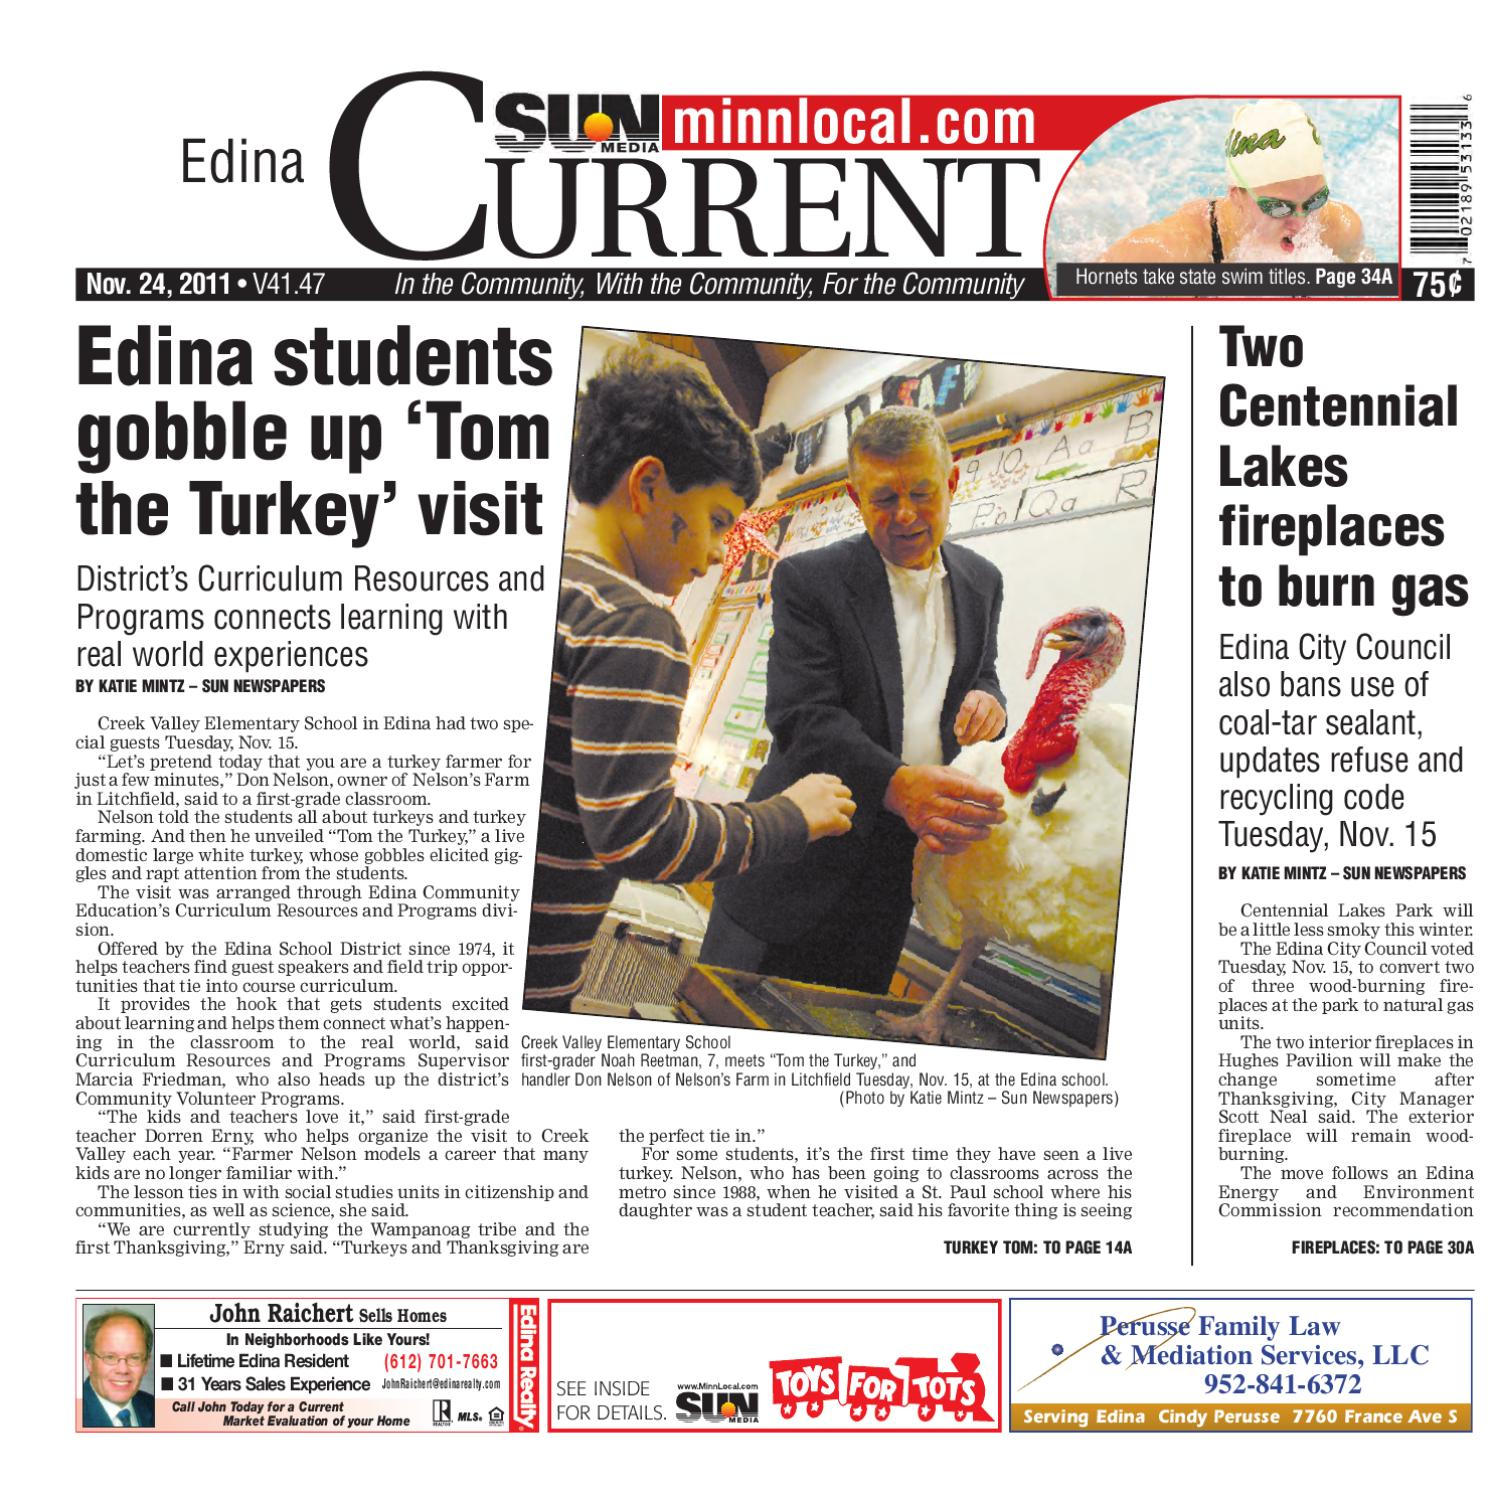 D1-Edina-11-24-11 by Sun Newspapers - issuu